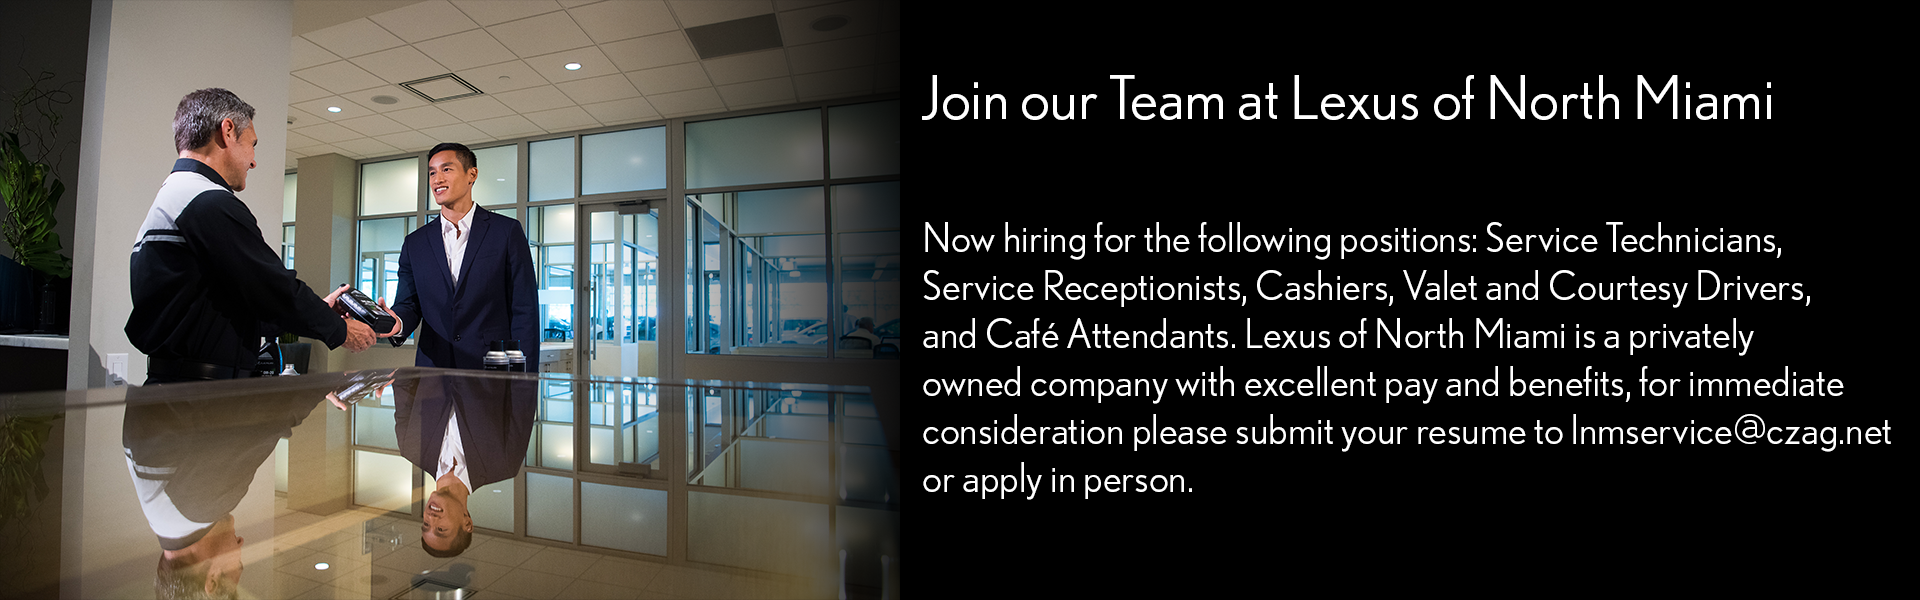 Join Our Team at Lexus of North Miami